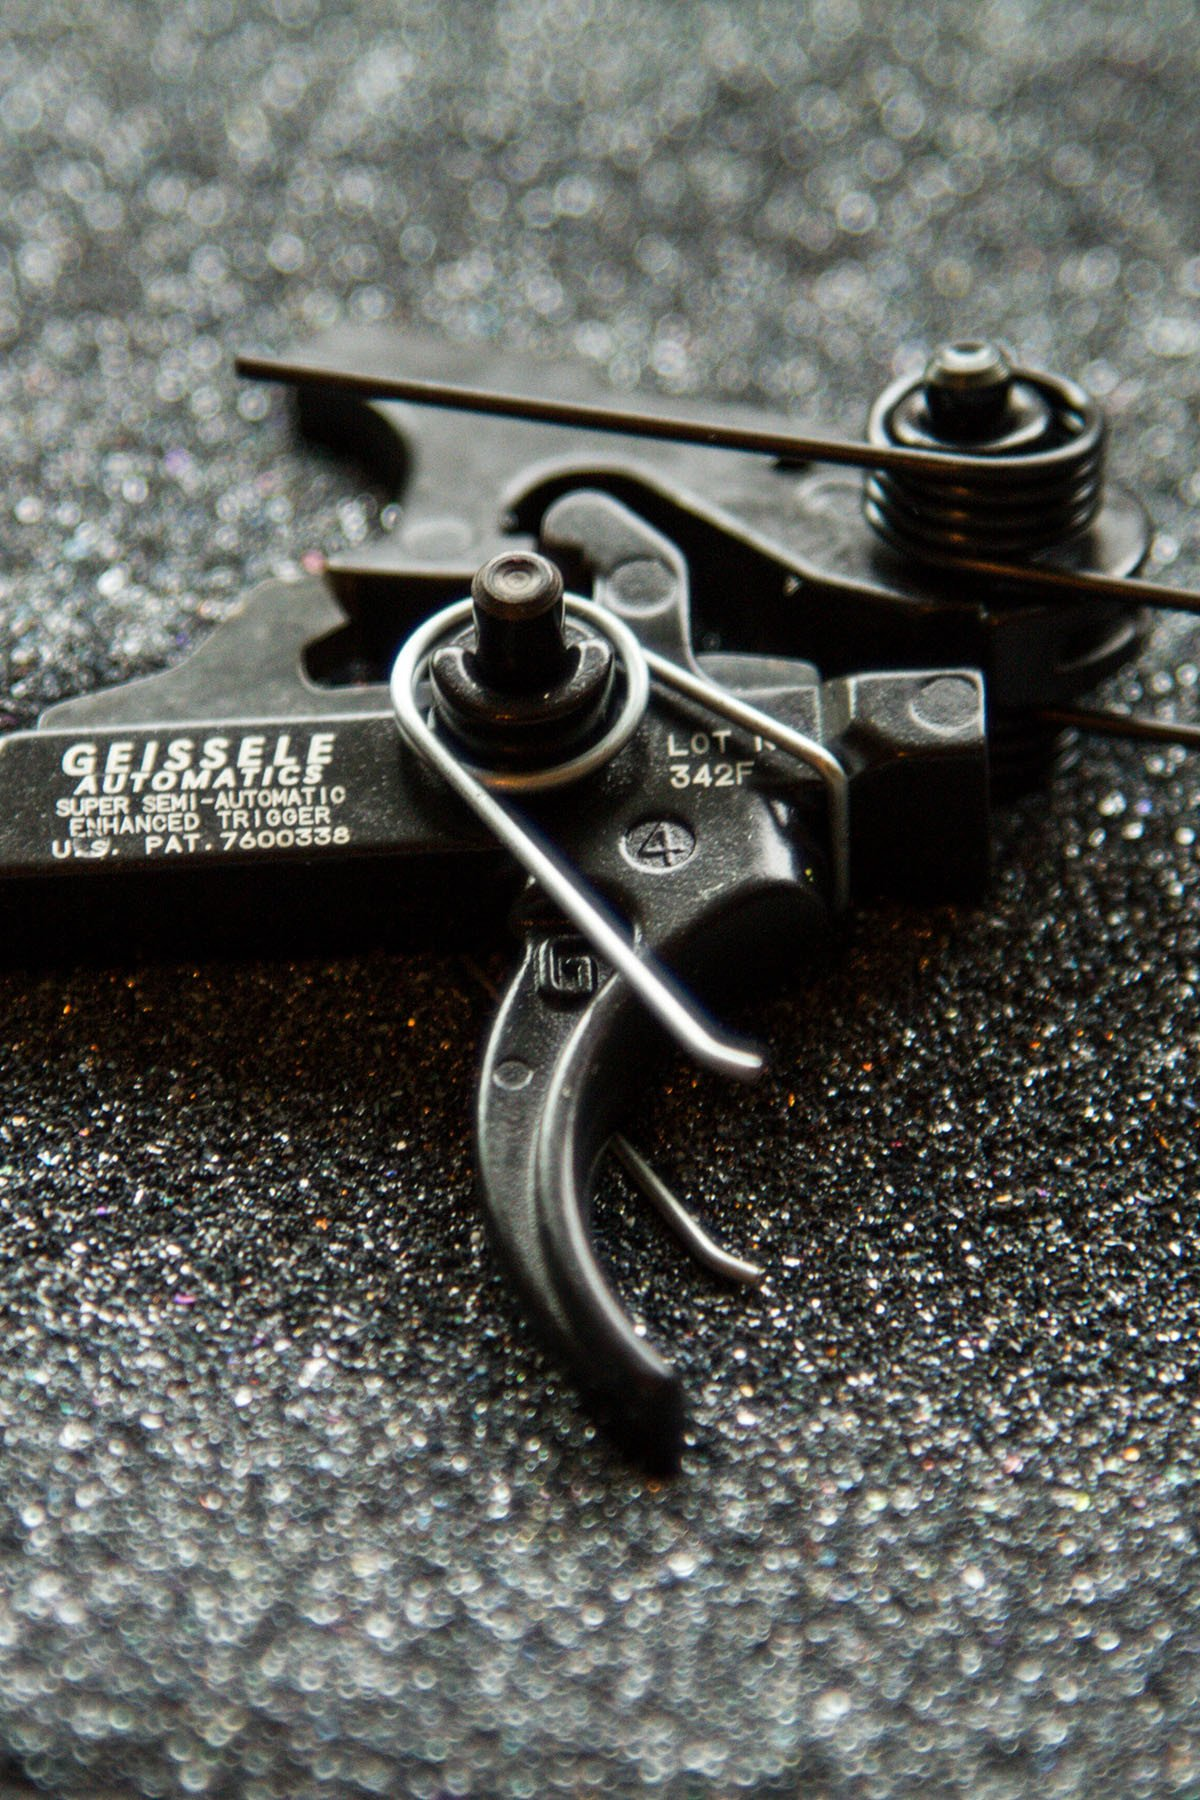 SUPER SEMI-AUTOMATIC ENHANCED (SSA-E) TRIGGER